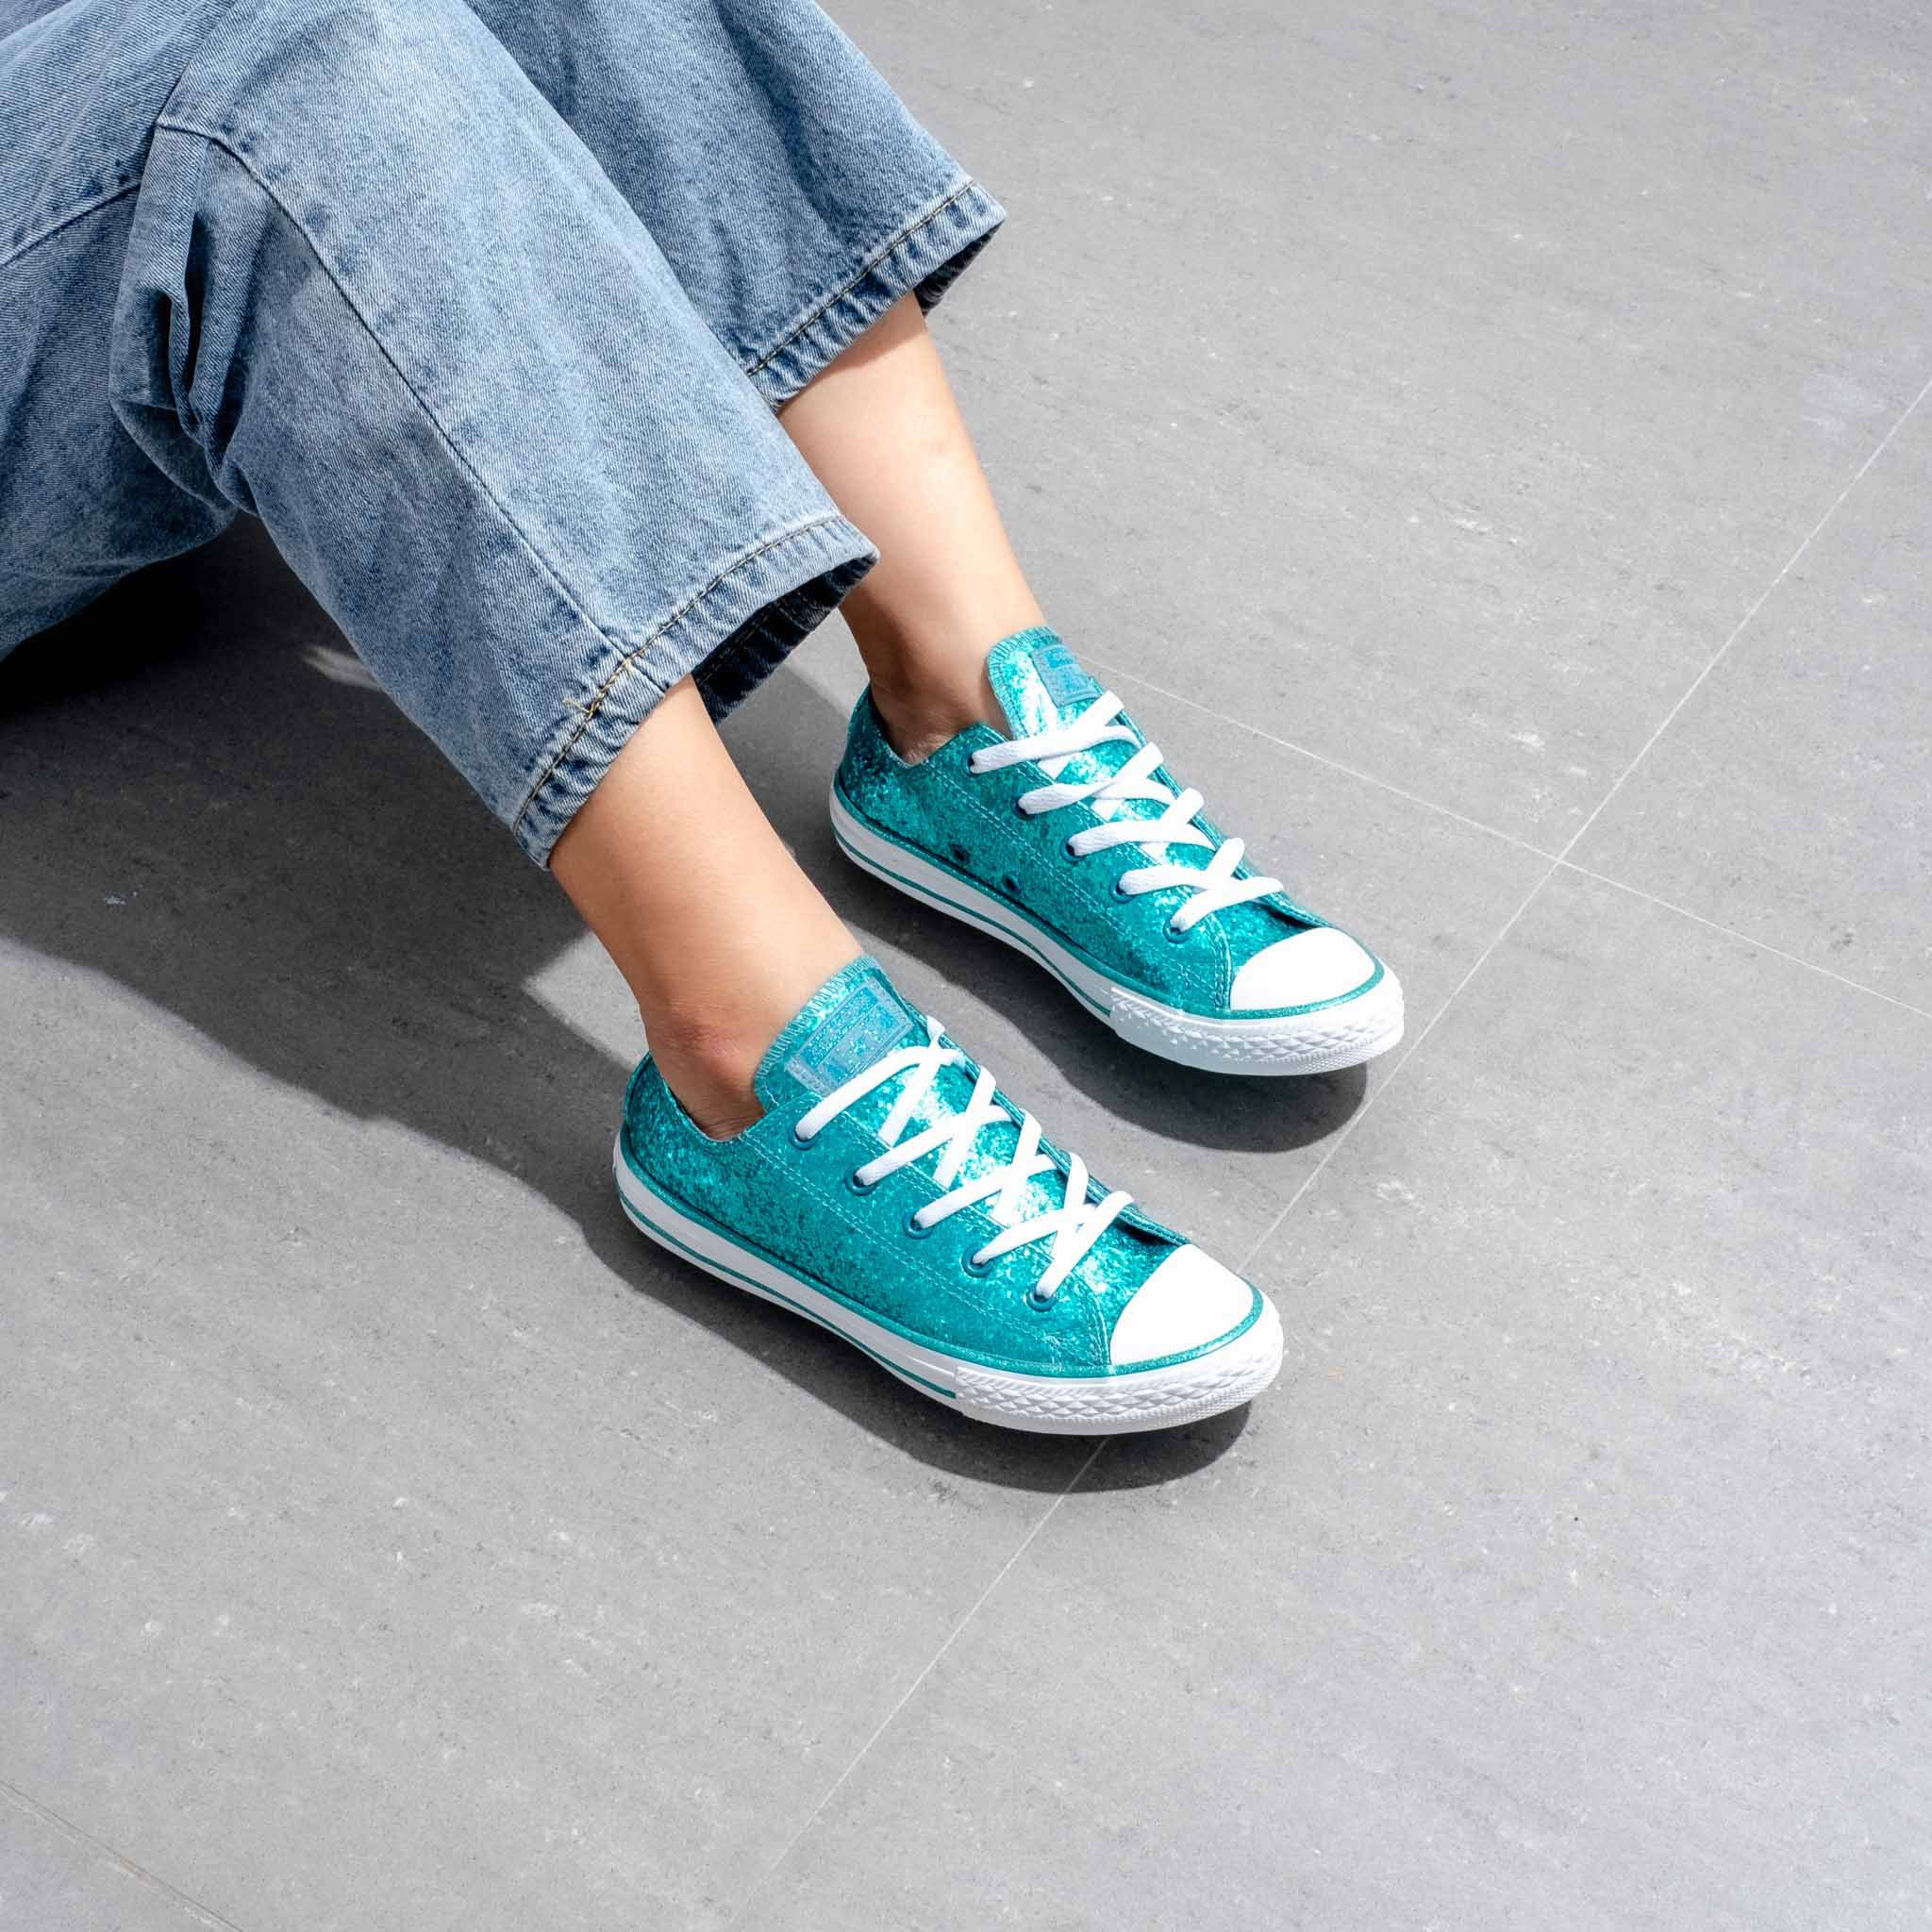 Converse Lowtop Serquin Teal - 36.5